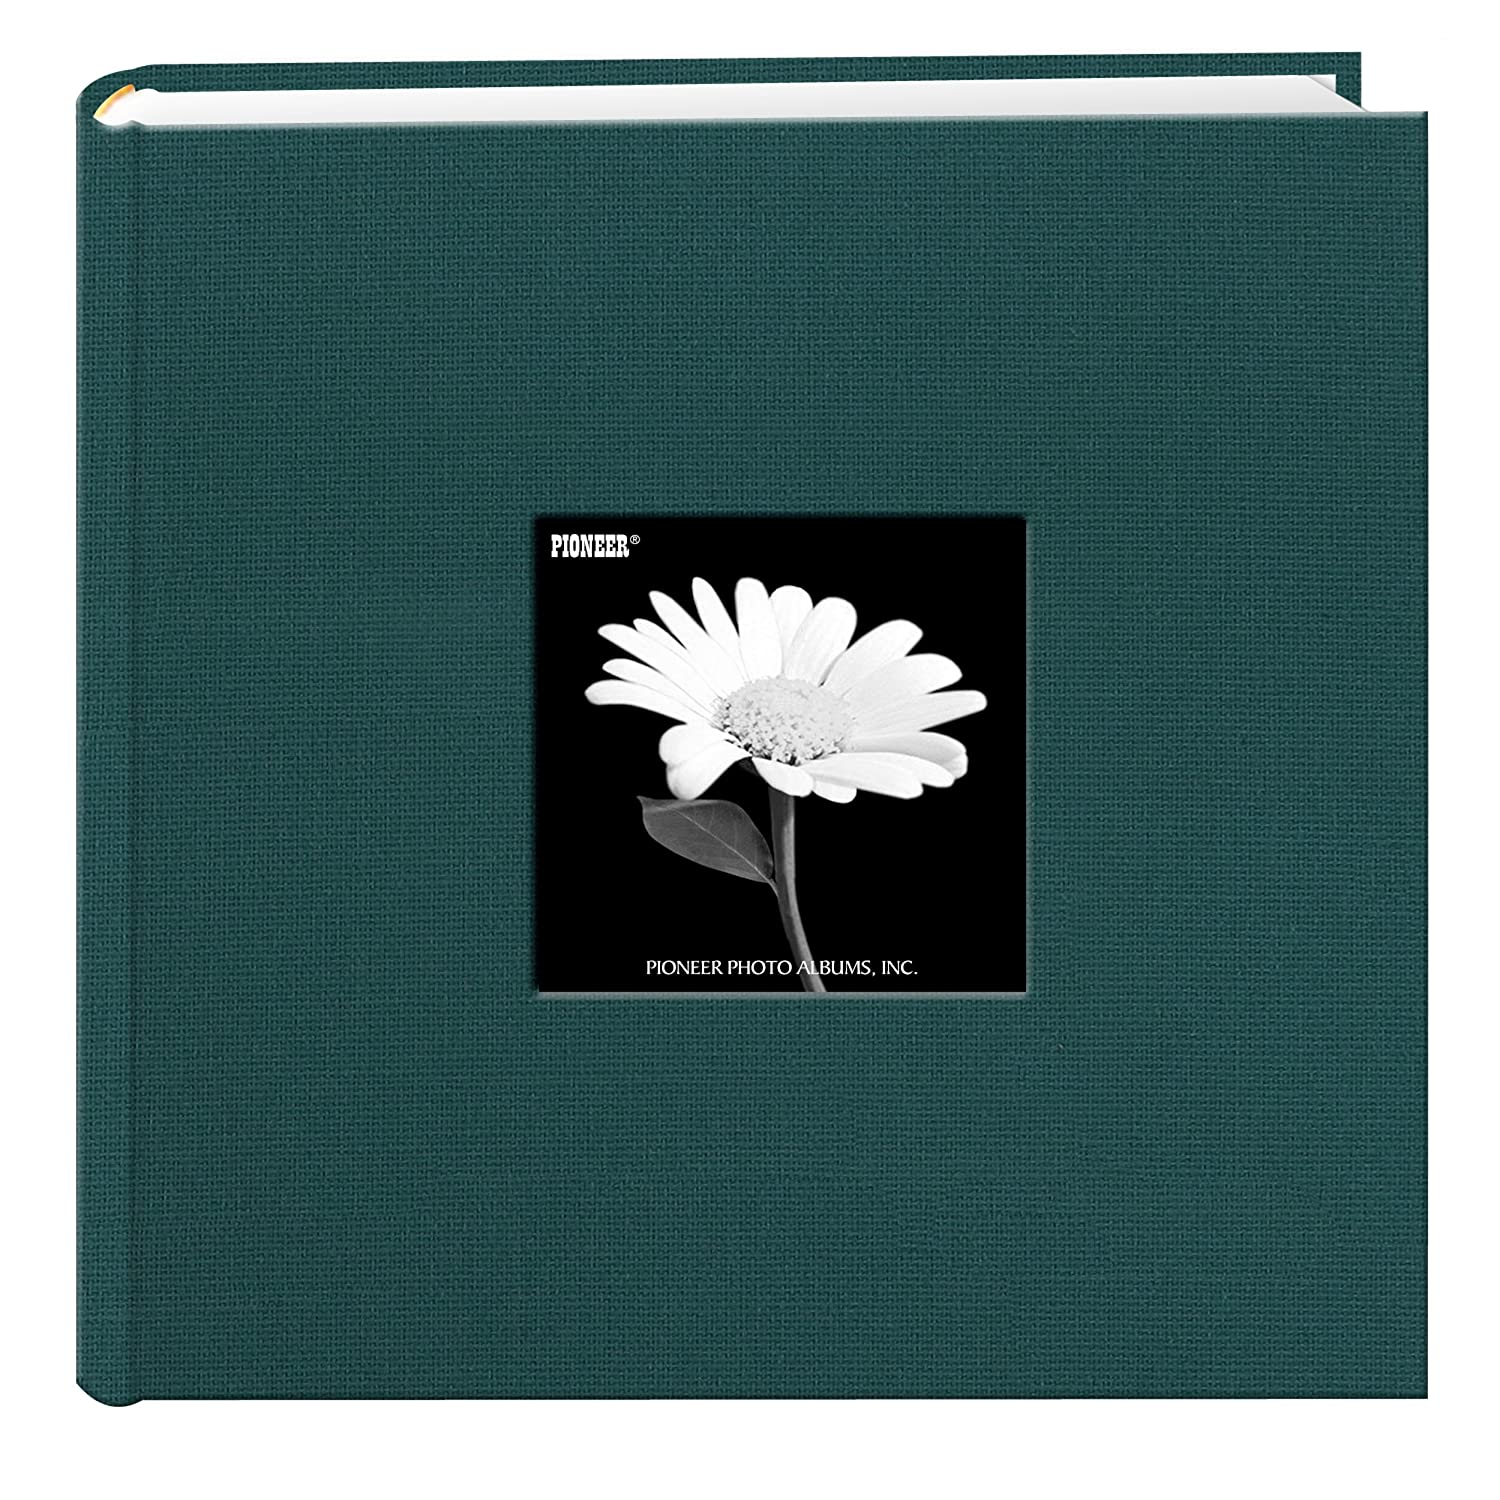 Fabric Frame Cover Photo Album 200 Pockets Hold 4x6 Photos, Tranquil Aqua Pioneer Photo Albums DA200CBFN/TA